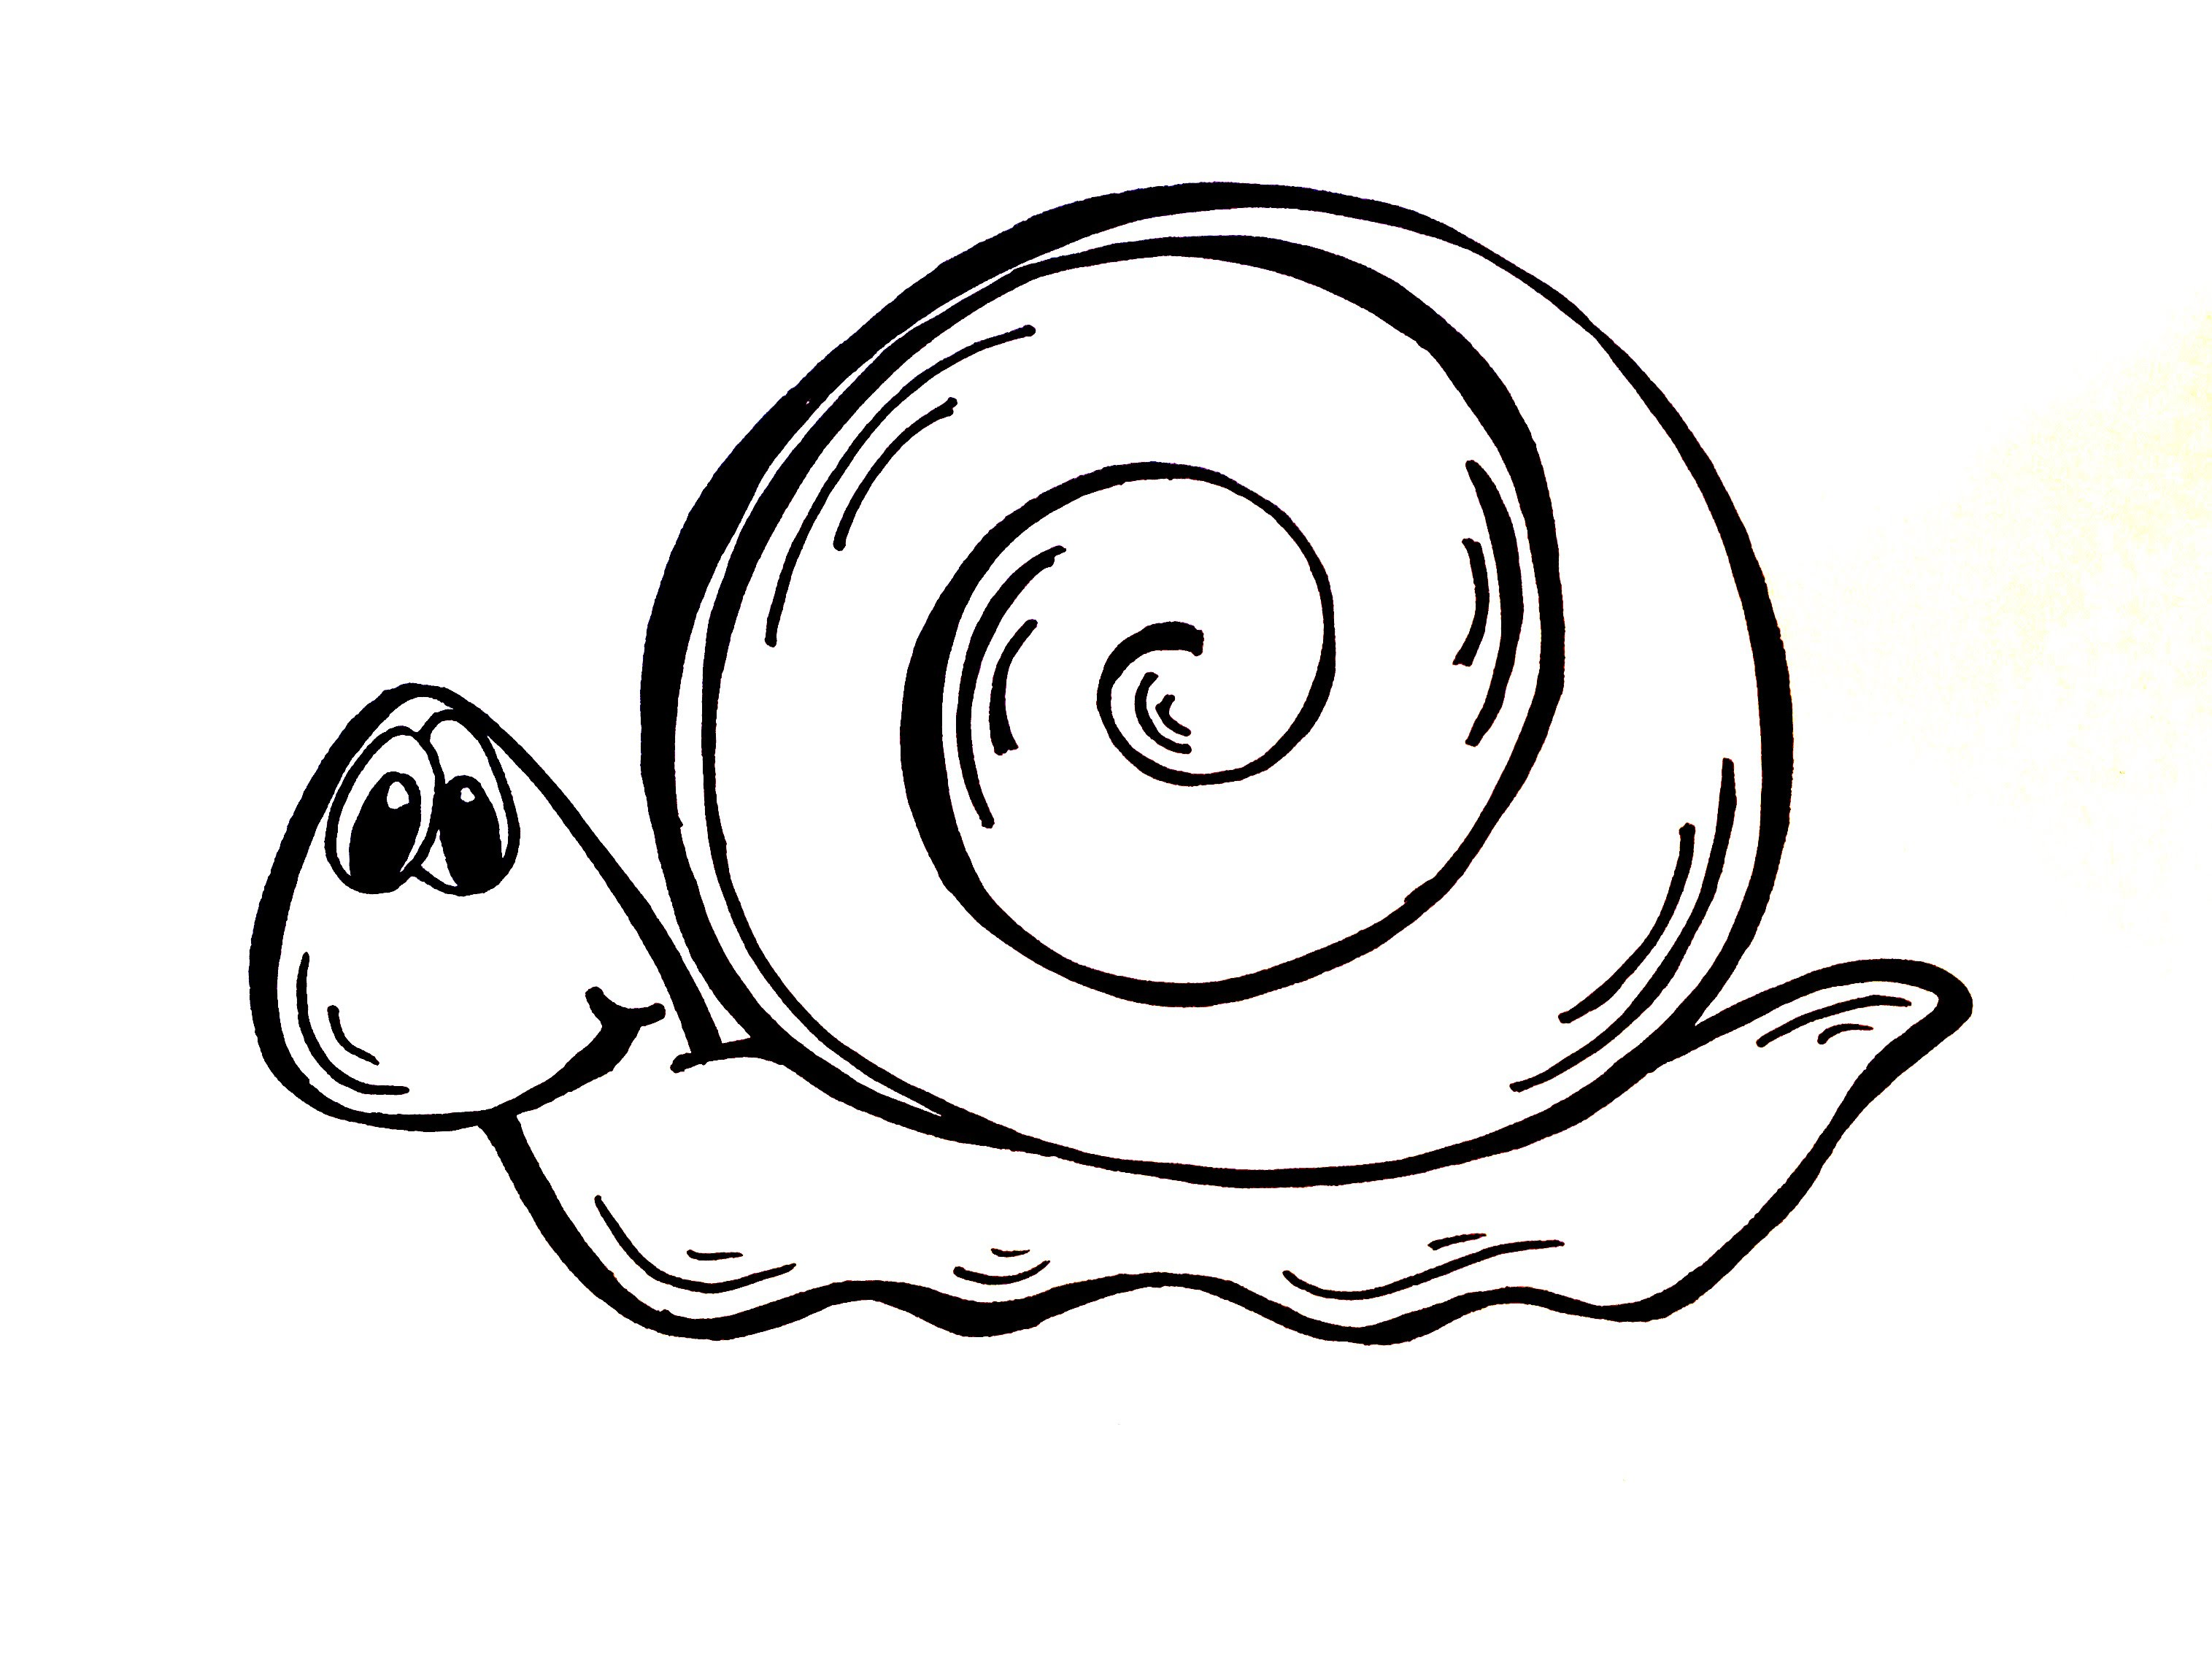 Snail drawing clipart best for How do you draw a snail